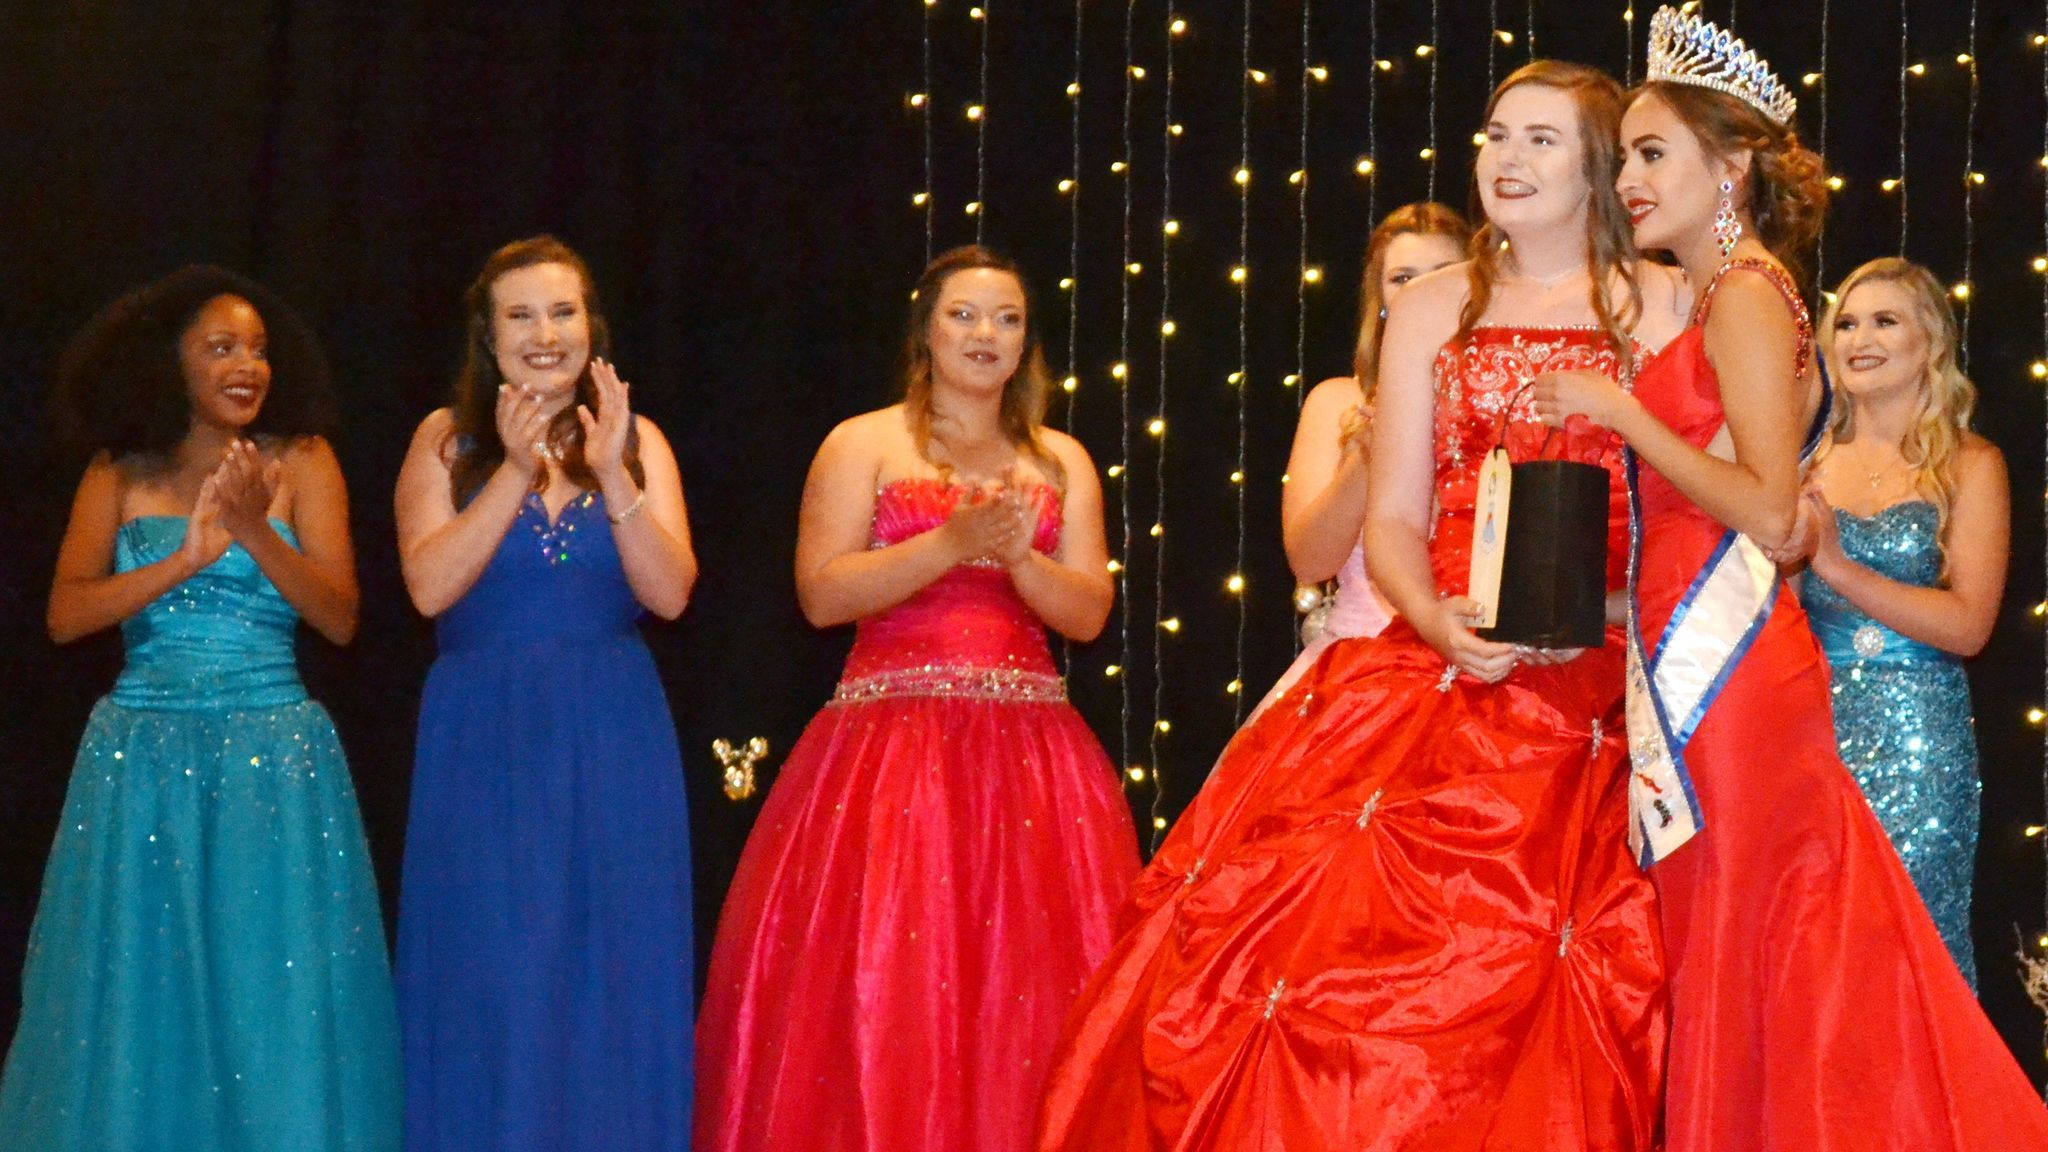 Contestant Emily Bryant wins the Teen Miss Congeniality award as presented by Teen Miss 2016 Ashley Dominguez, right.